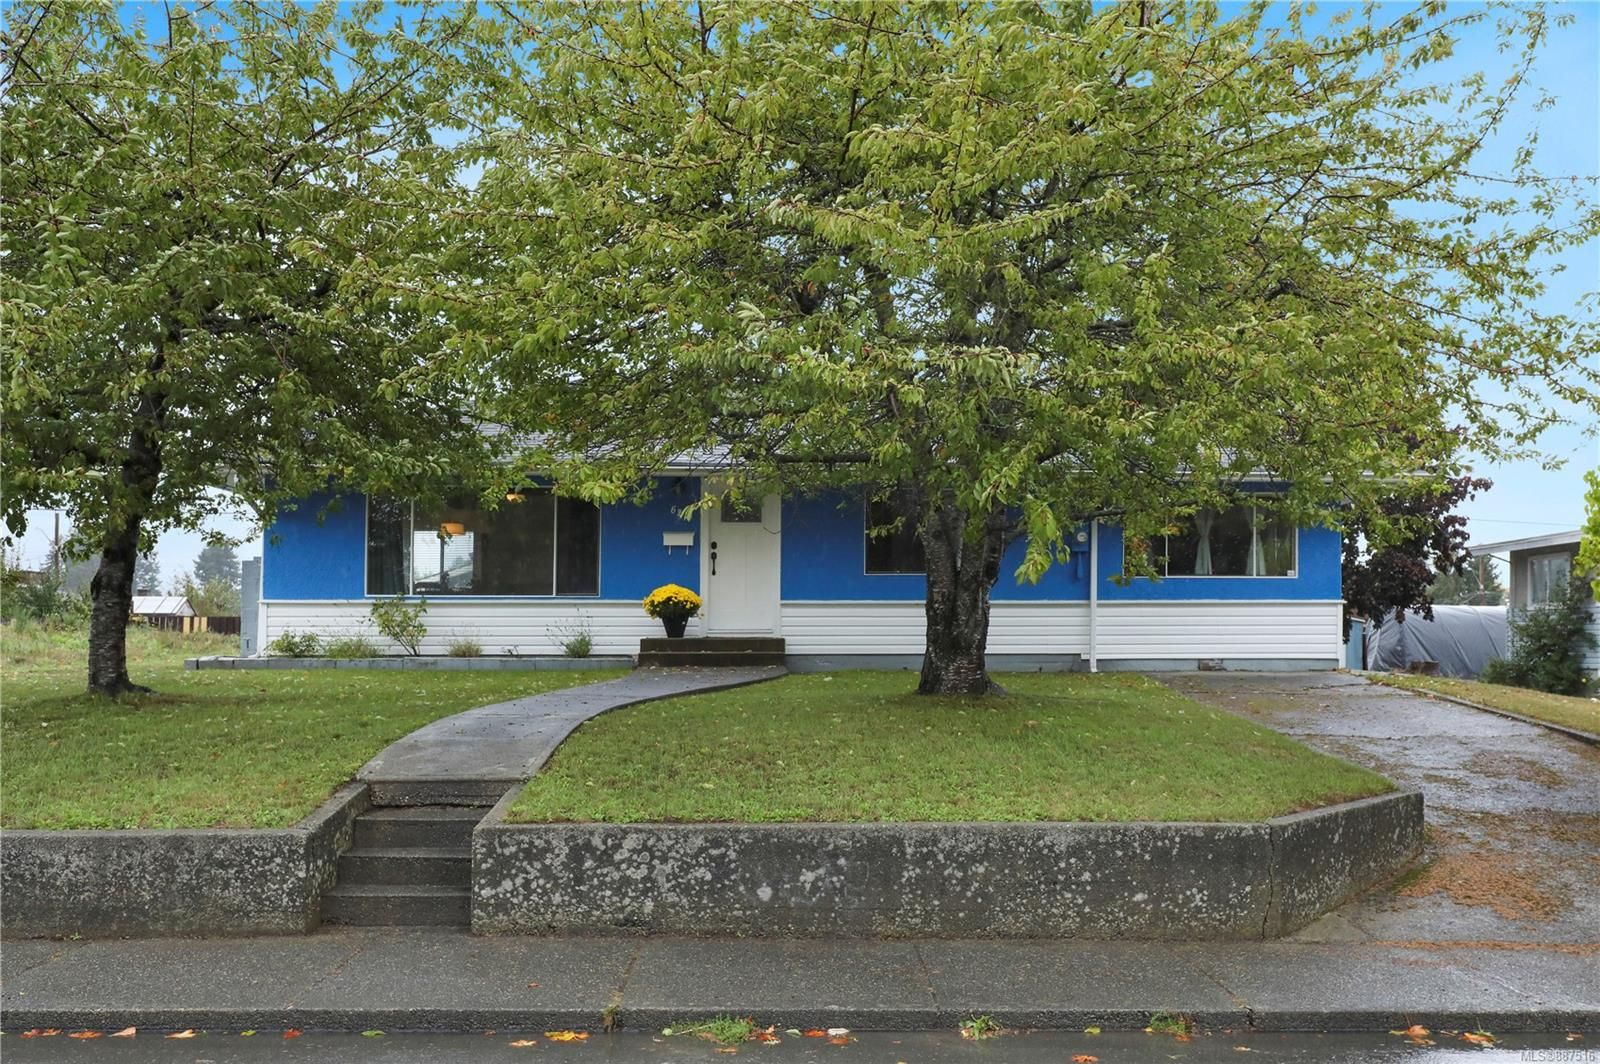 Main Photo: 625 17th St in : CV Courtenay City House for sale (Comox Valley)  : MLS®# 887516